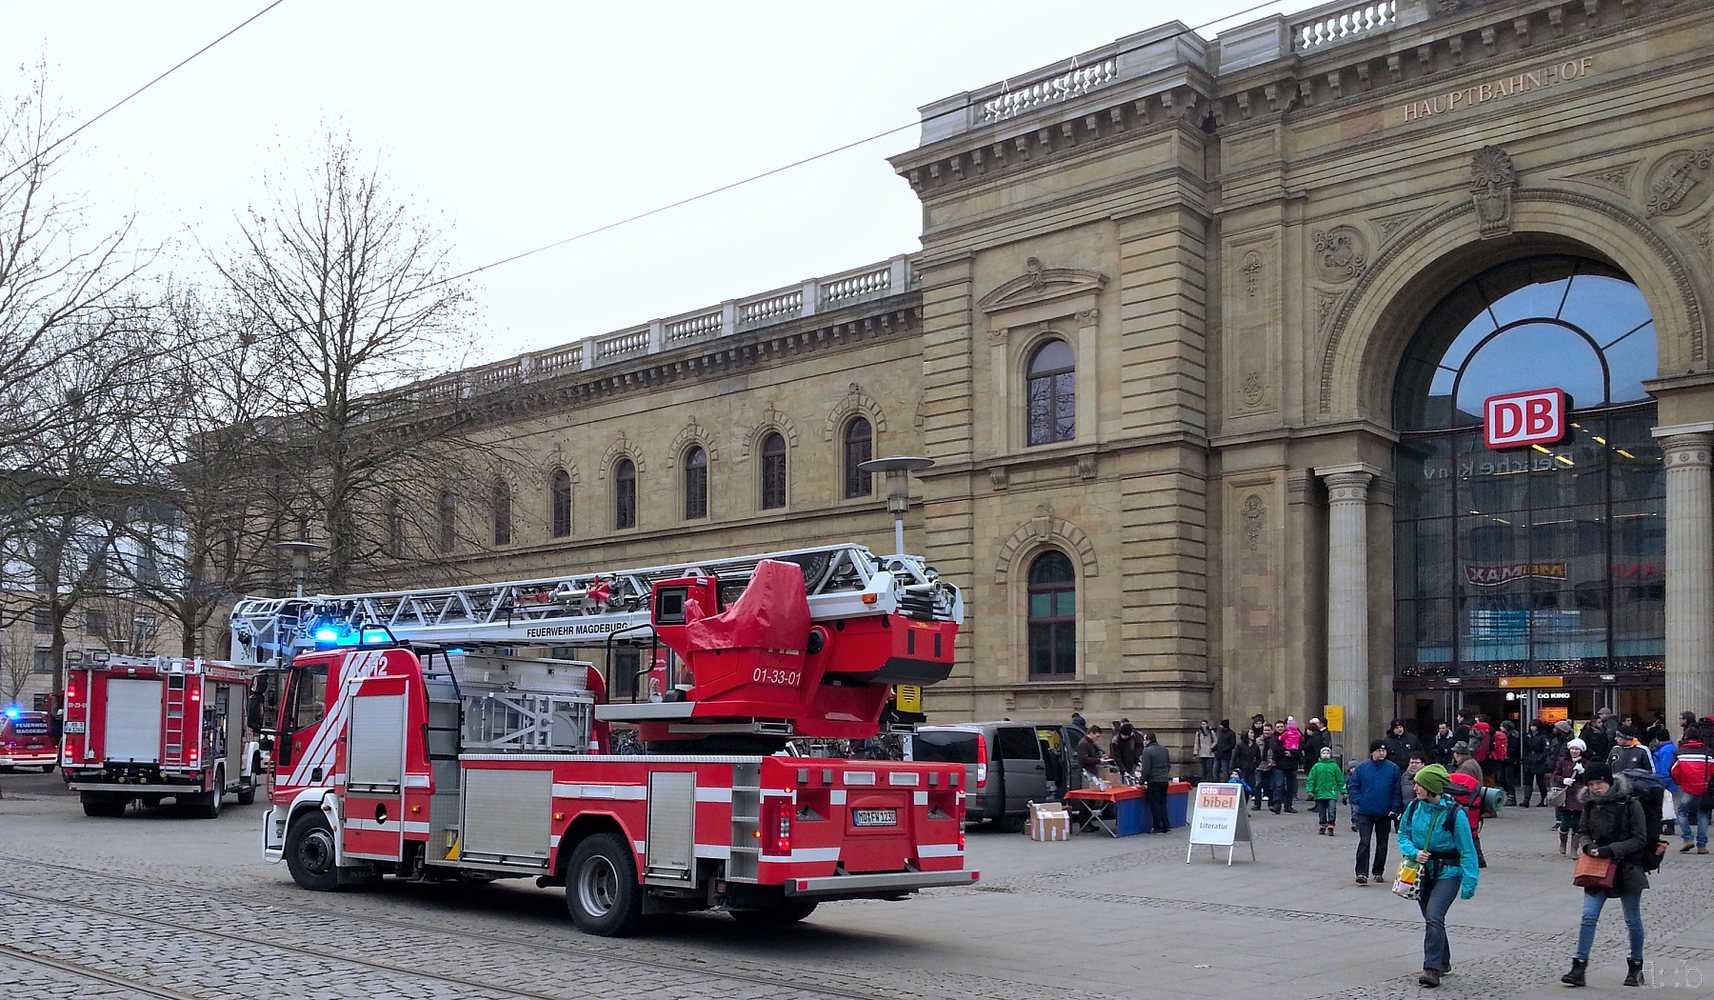 Firetrucks in front of Magdeburg central station.